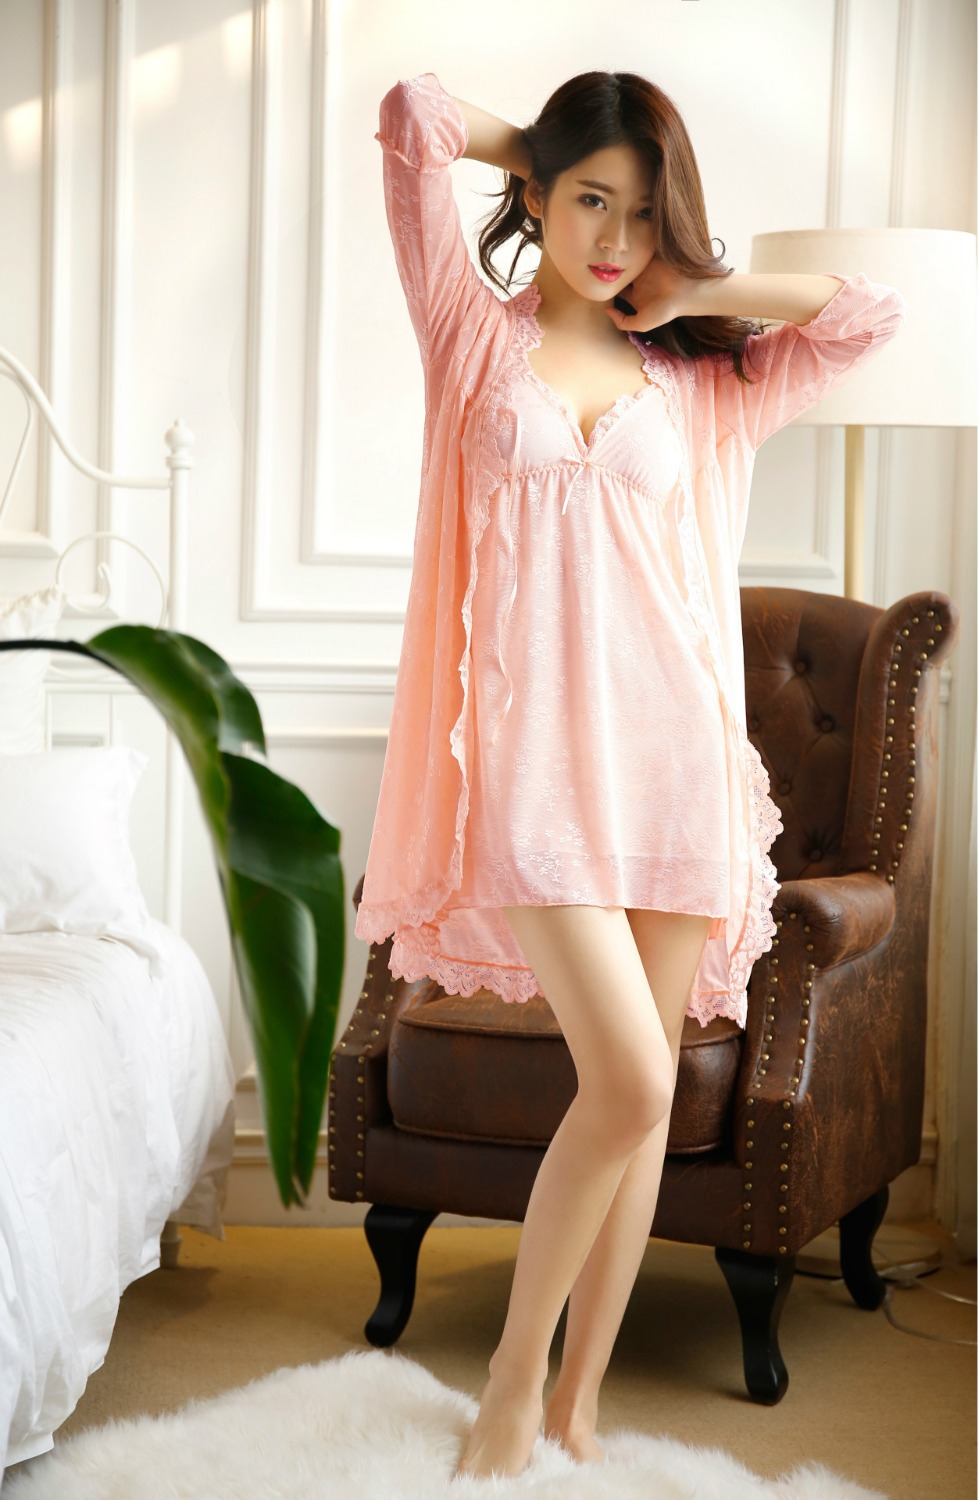 Sexy 2017 new arrival brand lace robe & gown set Plus Size two piece suspender sleepwear + bathing robe long sleeves underwear